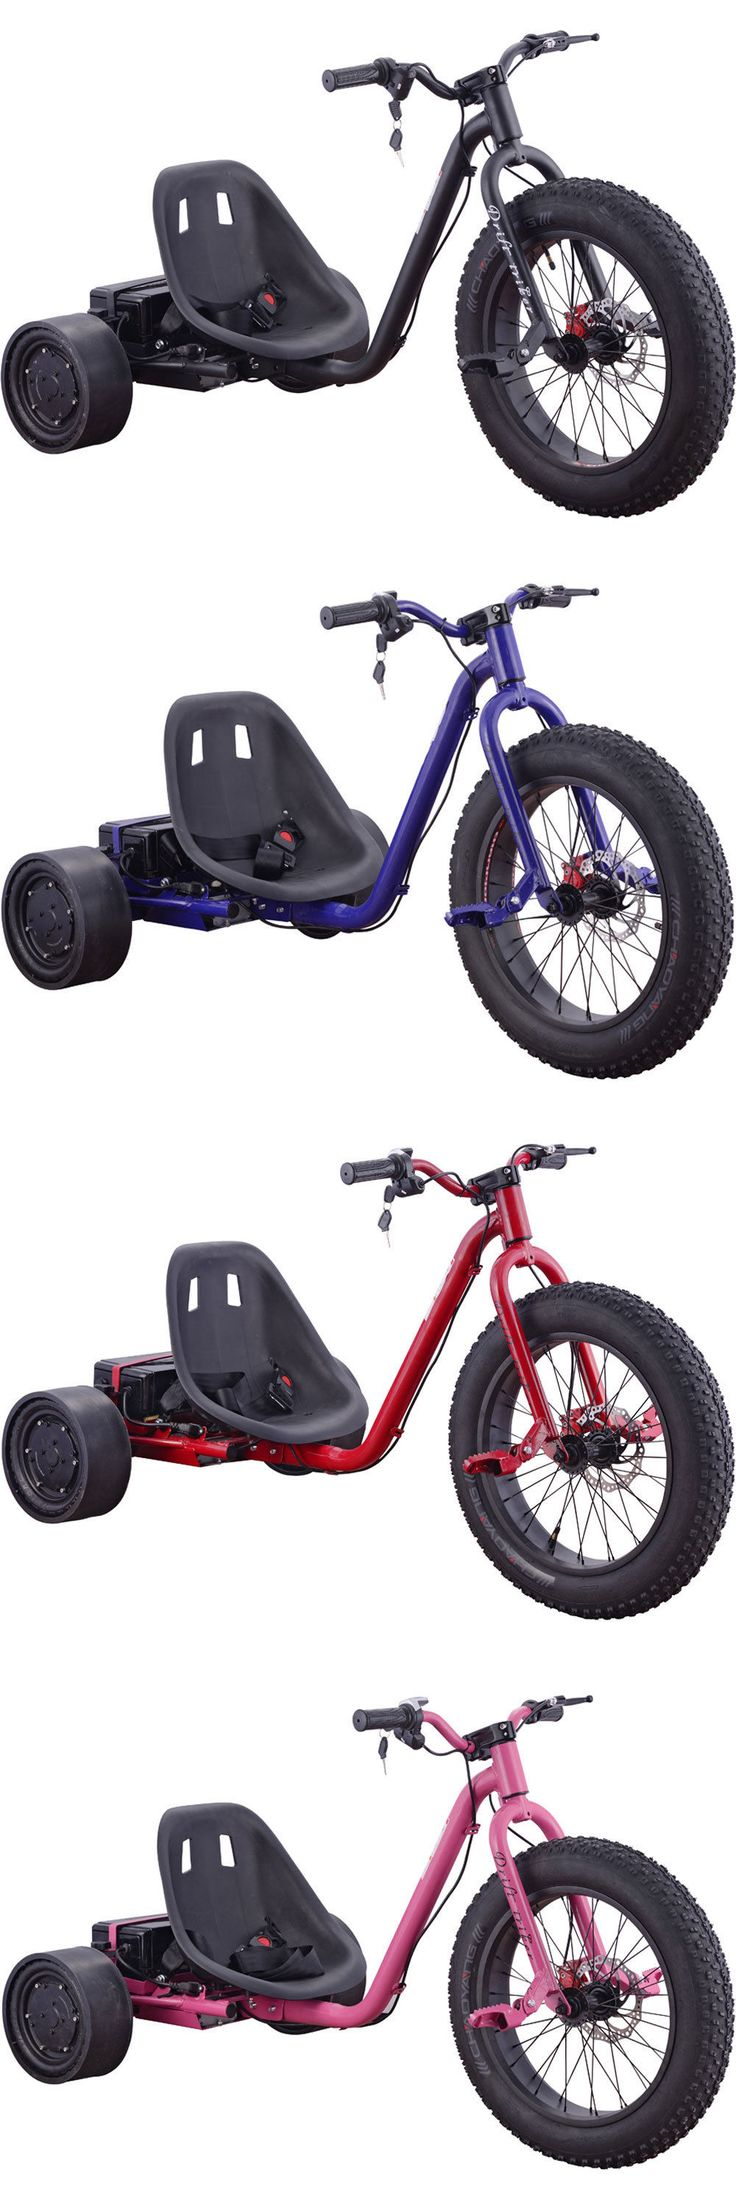 Electric scooters 47349 mototec drifter 36v 900w electric trike black blue red